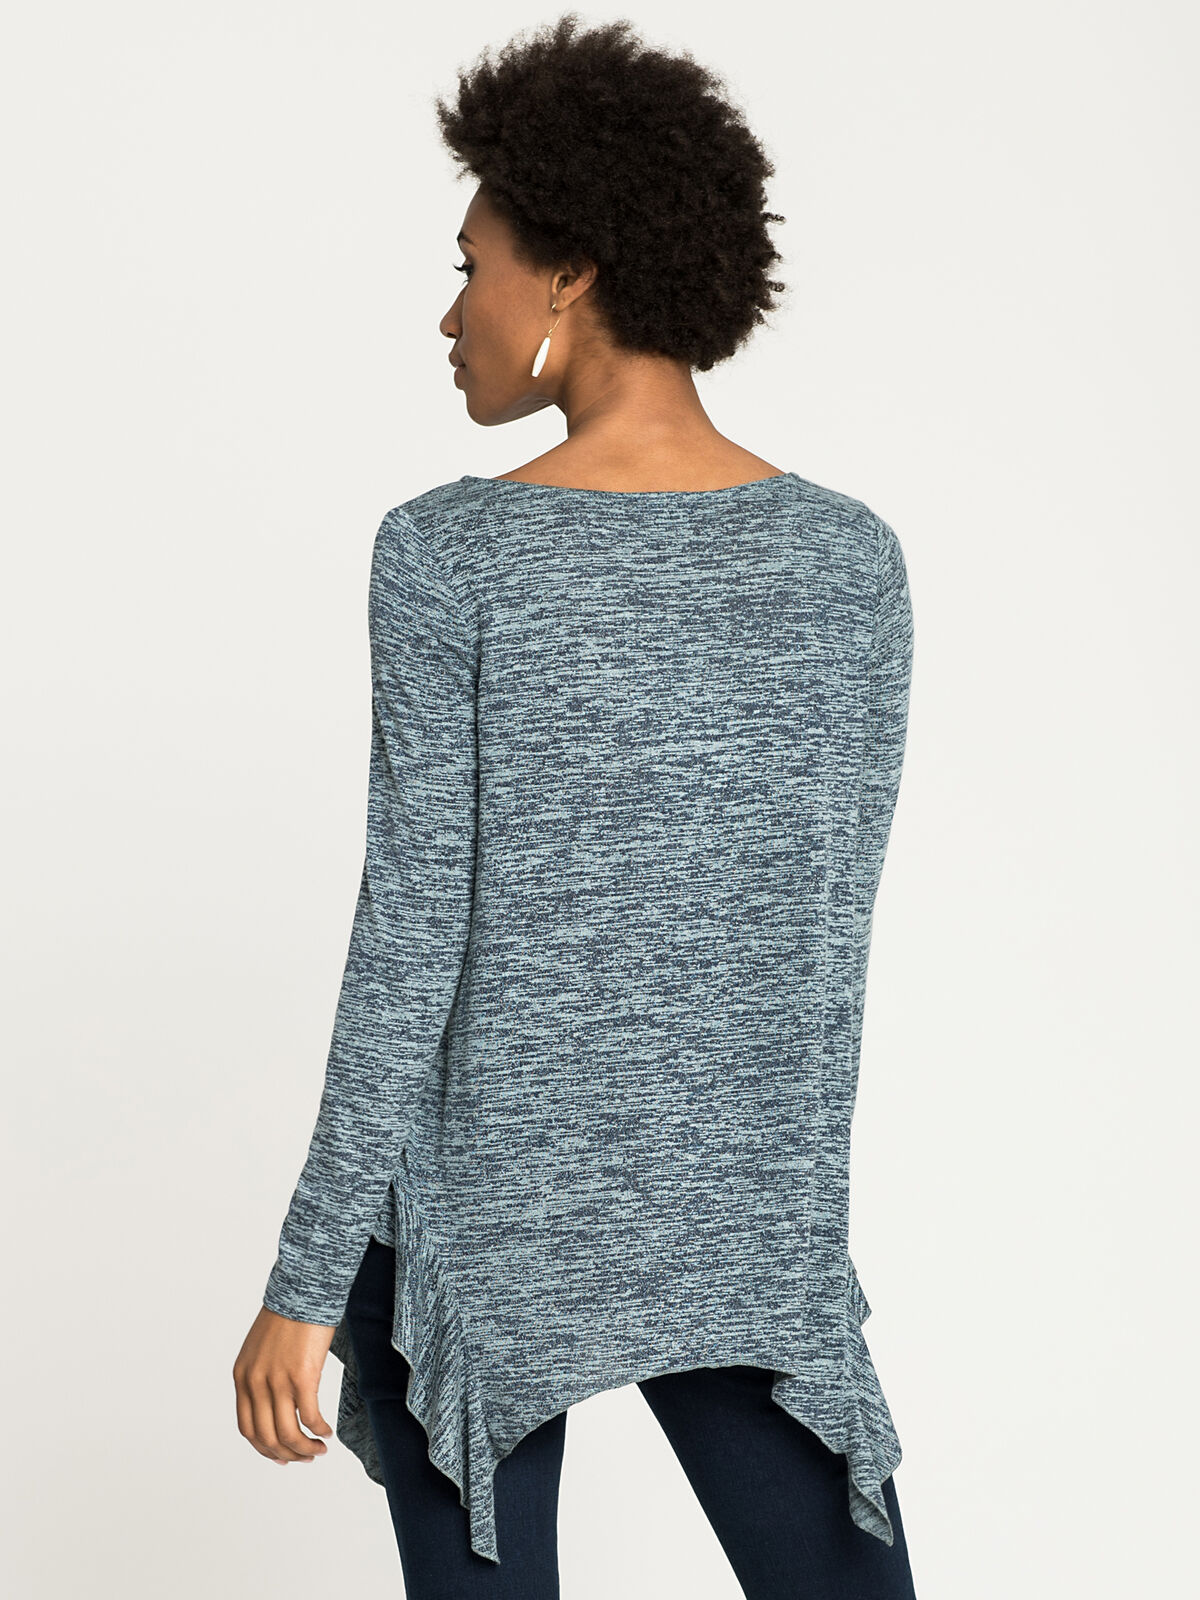 Every Occasion Ruffle Top